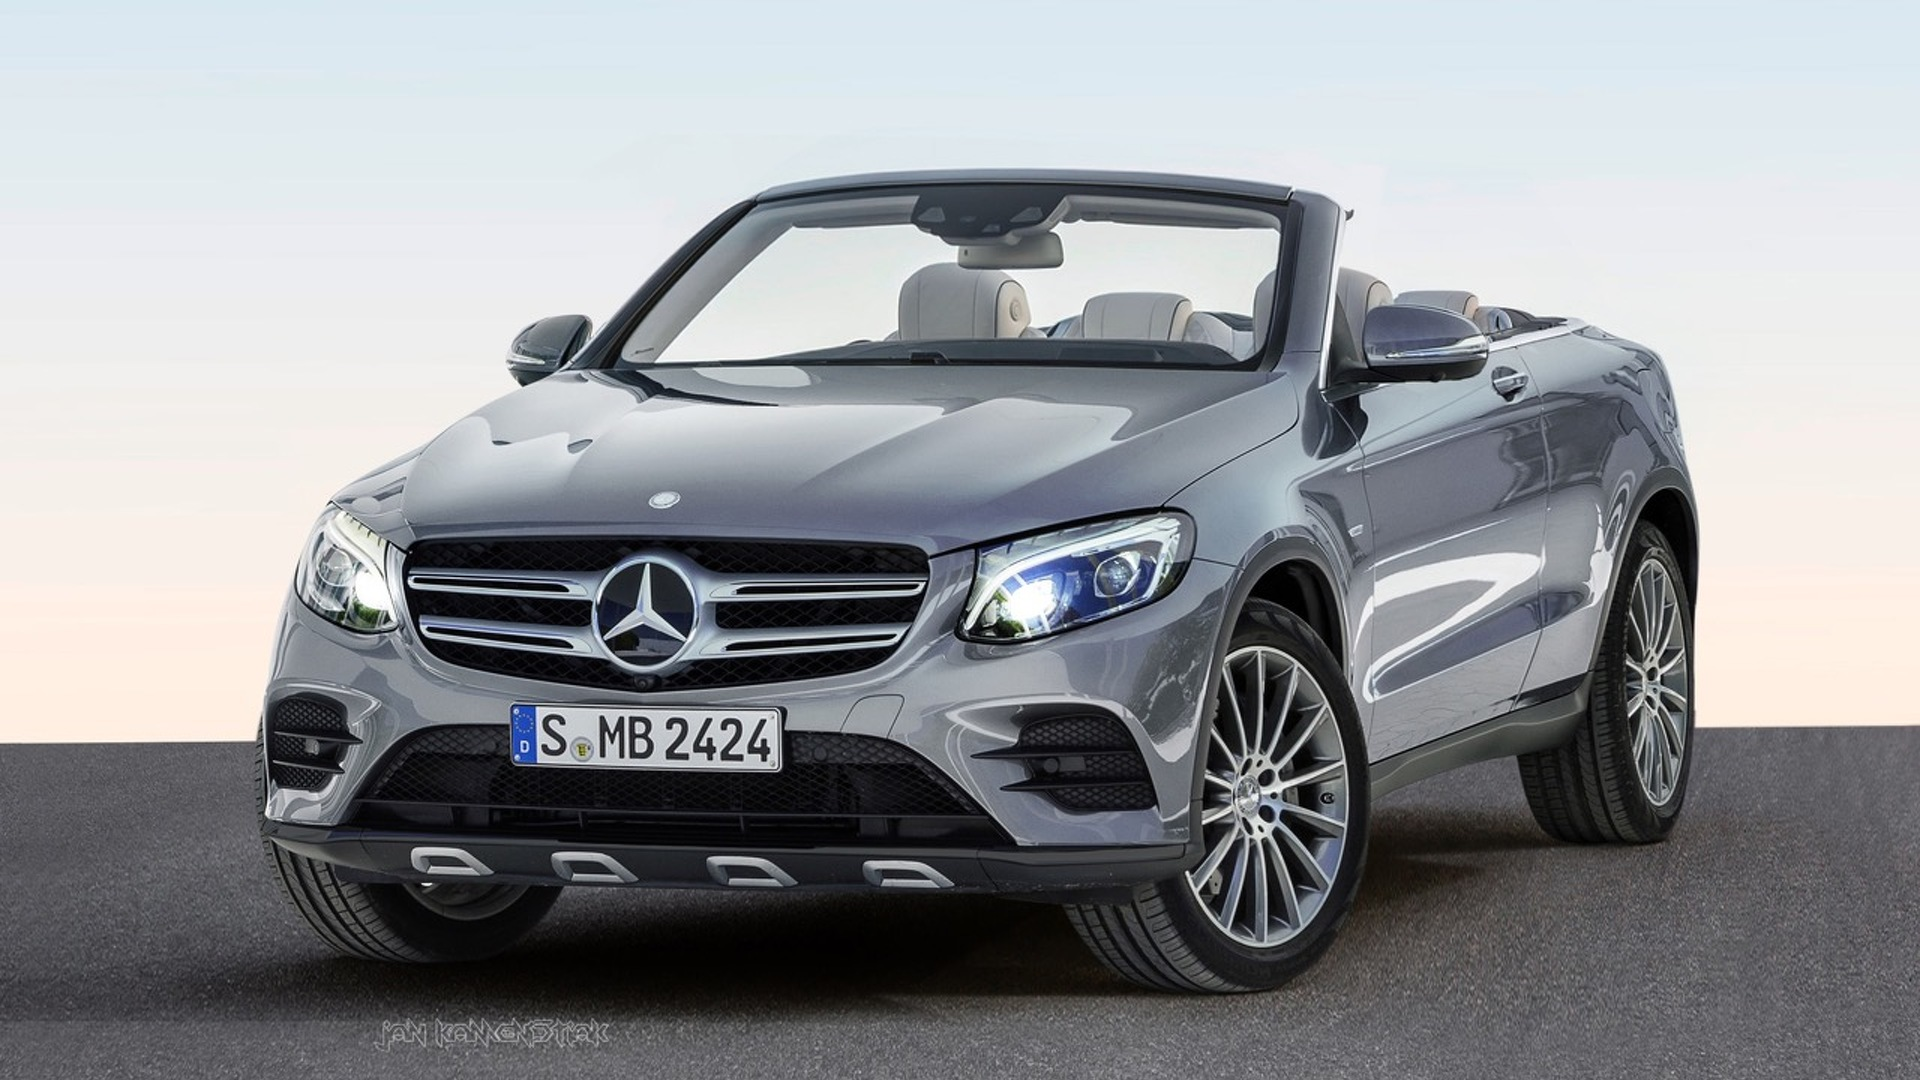 Mercedes GLC Convertible gets rendered